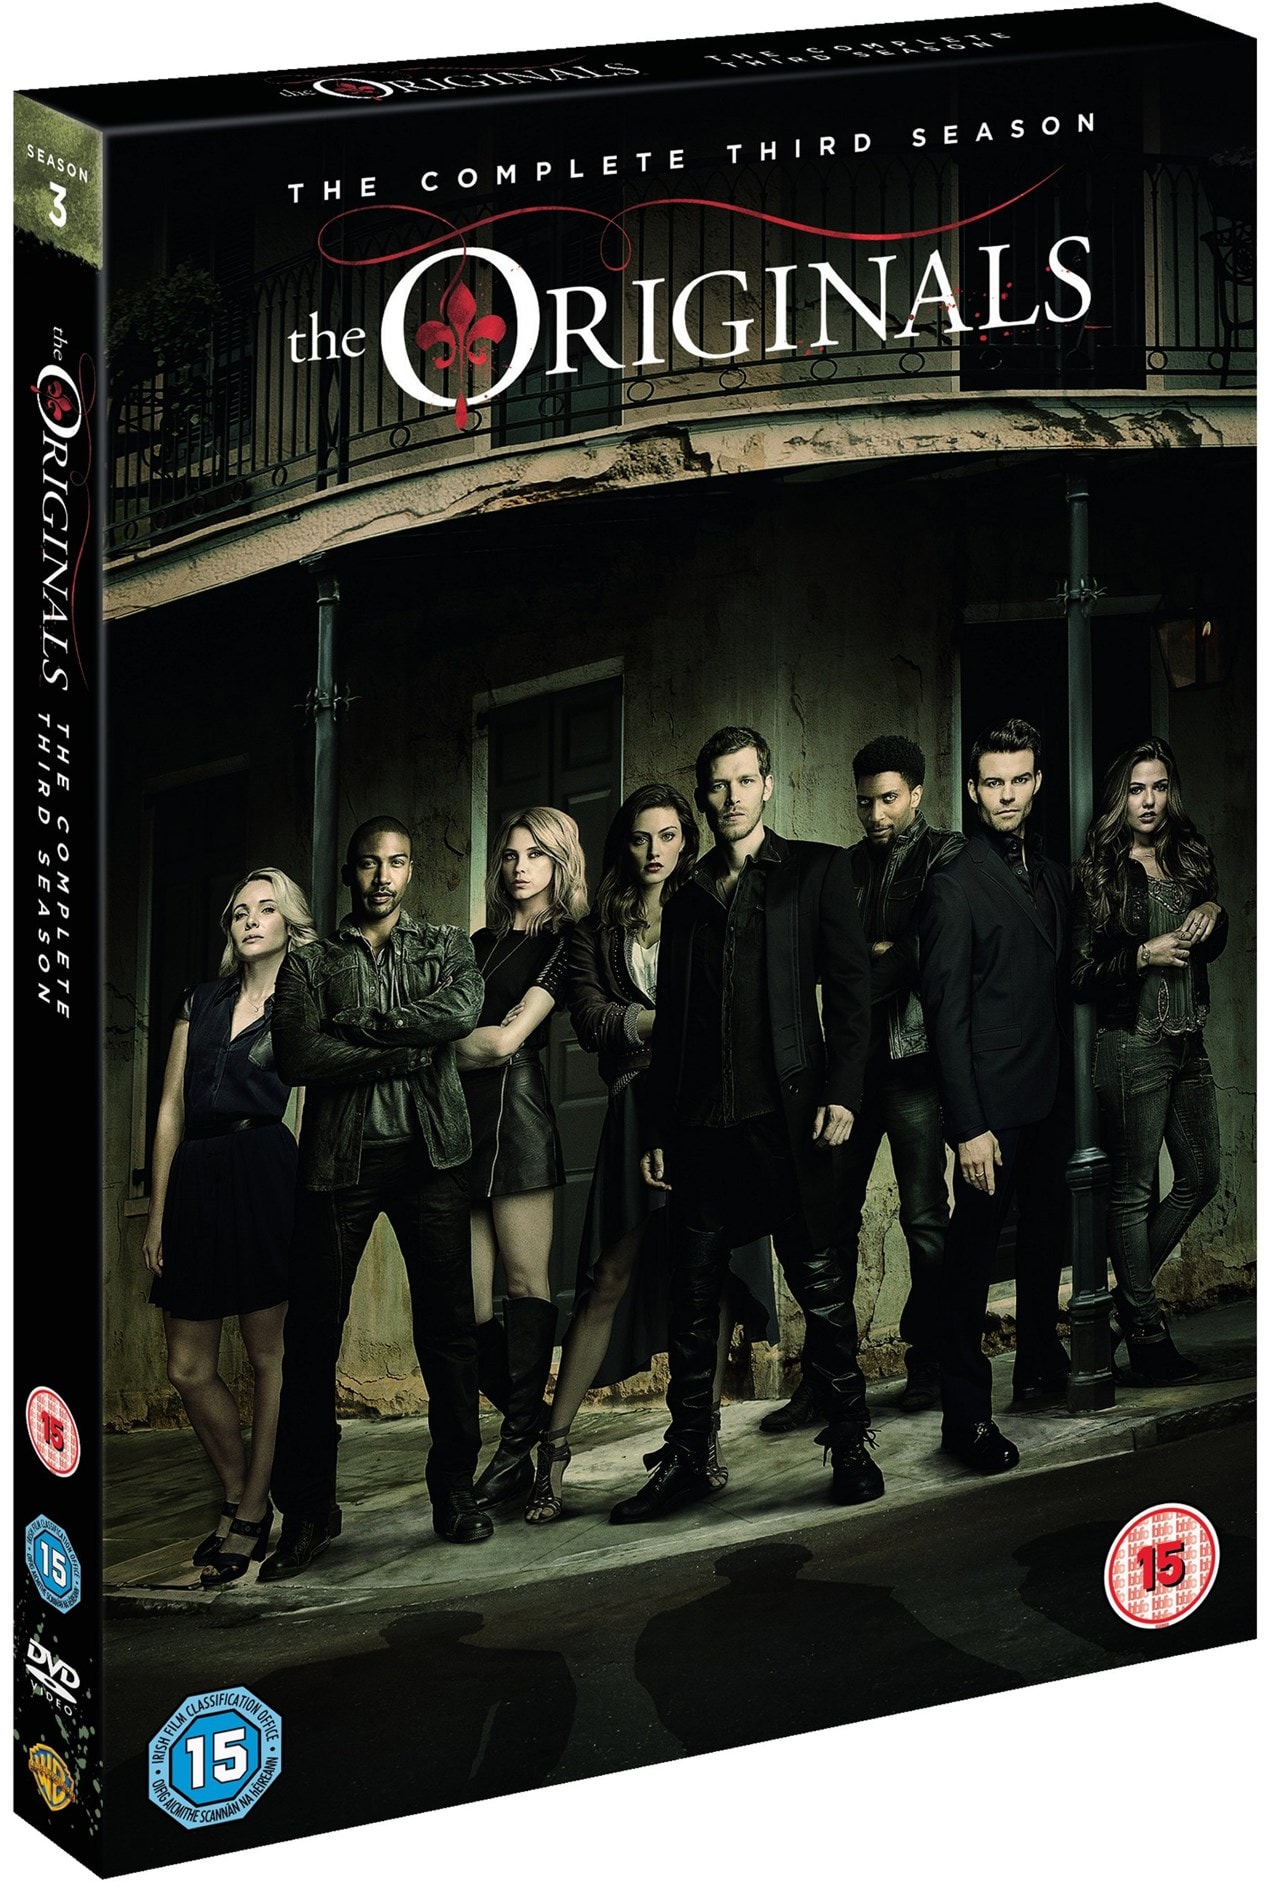 The Originals: The Complete Third Season - 2